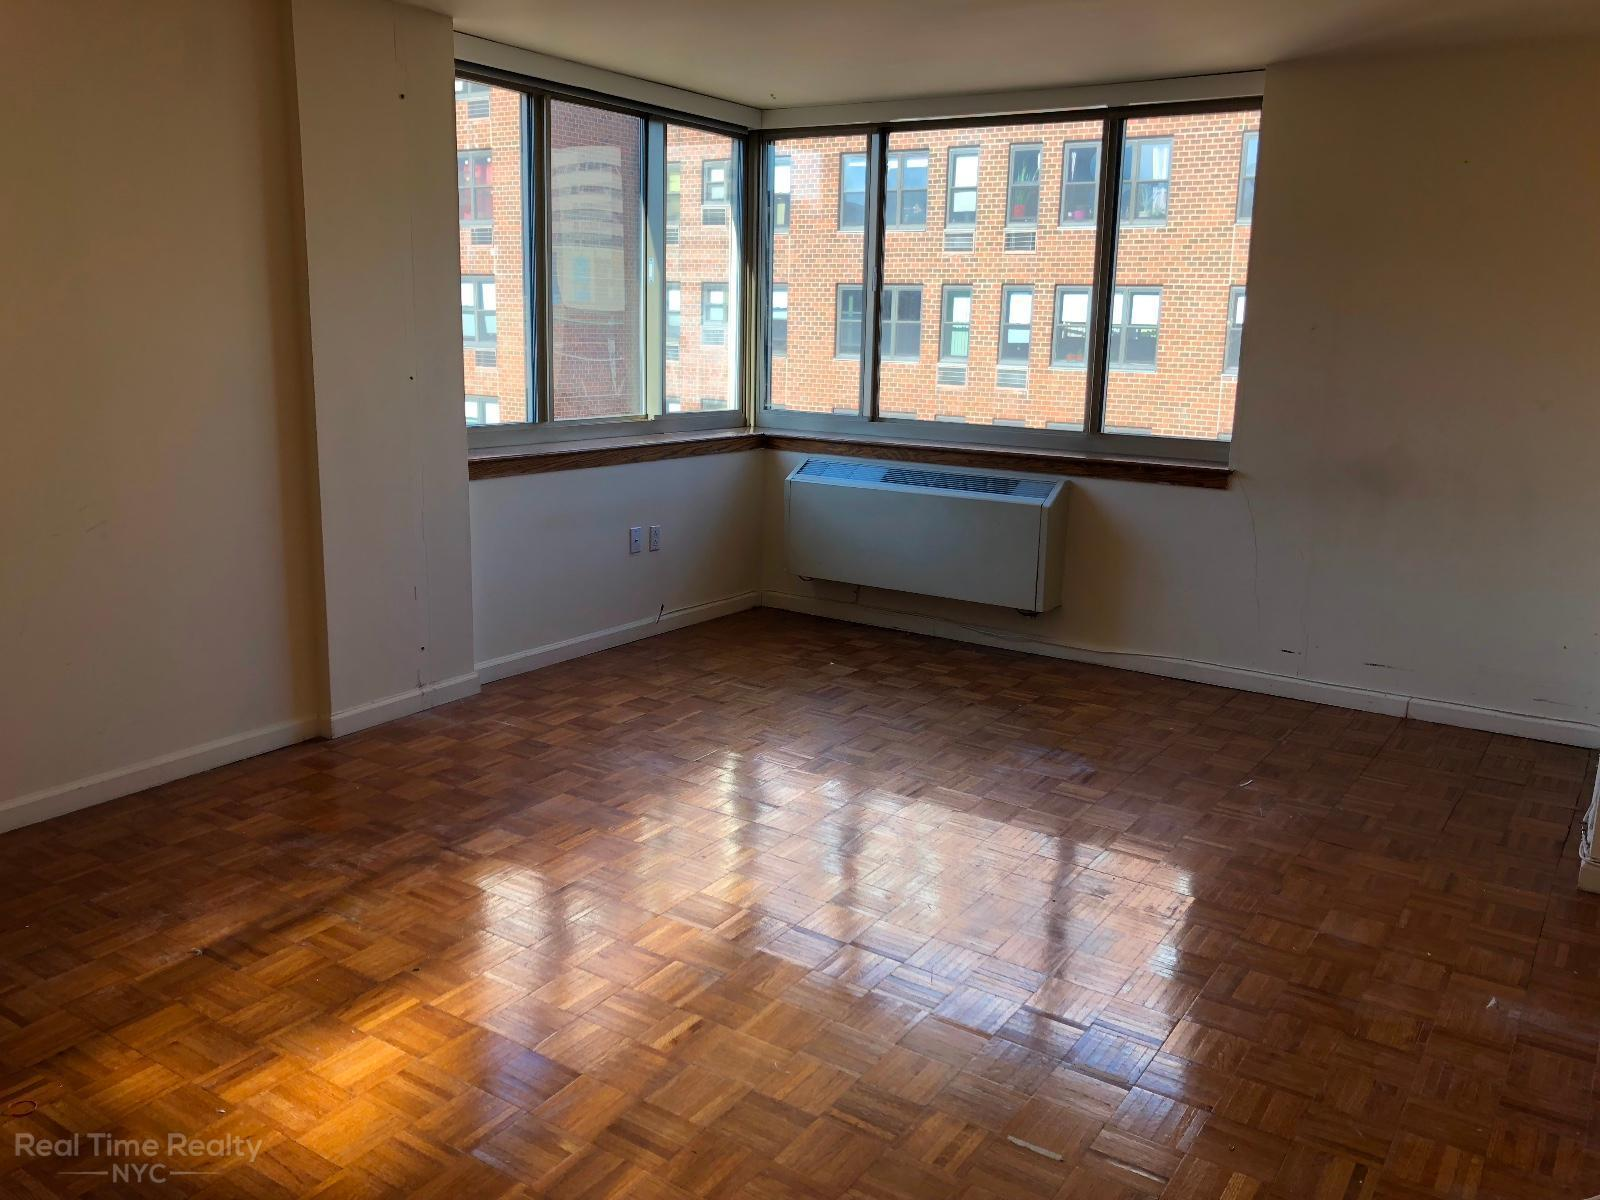 NYC Apartments: Murray Hill 1 Bedroom Apartment for Rent